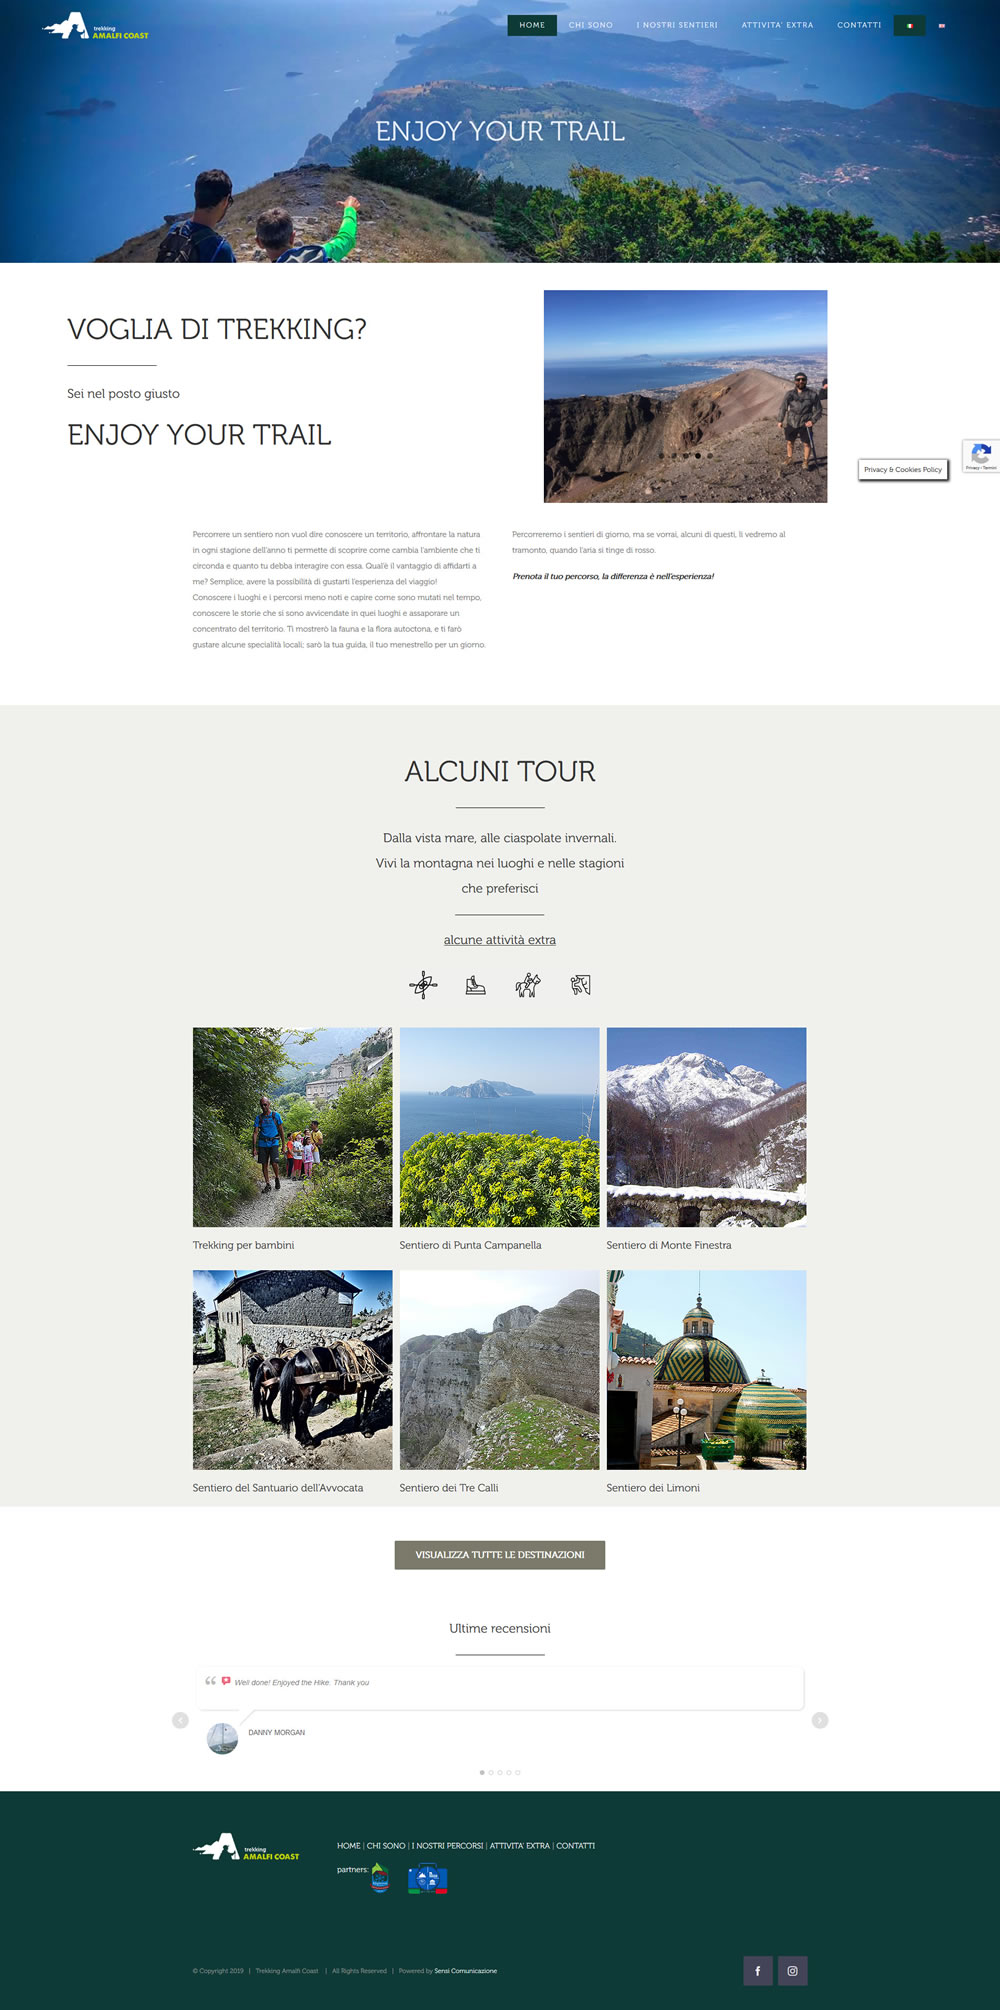 Trekking Amalfi Coast, Guida Ambientale Escursionistica - Setteweb.it Portfolio Sito Web WordPress 7Web-2019